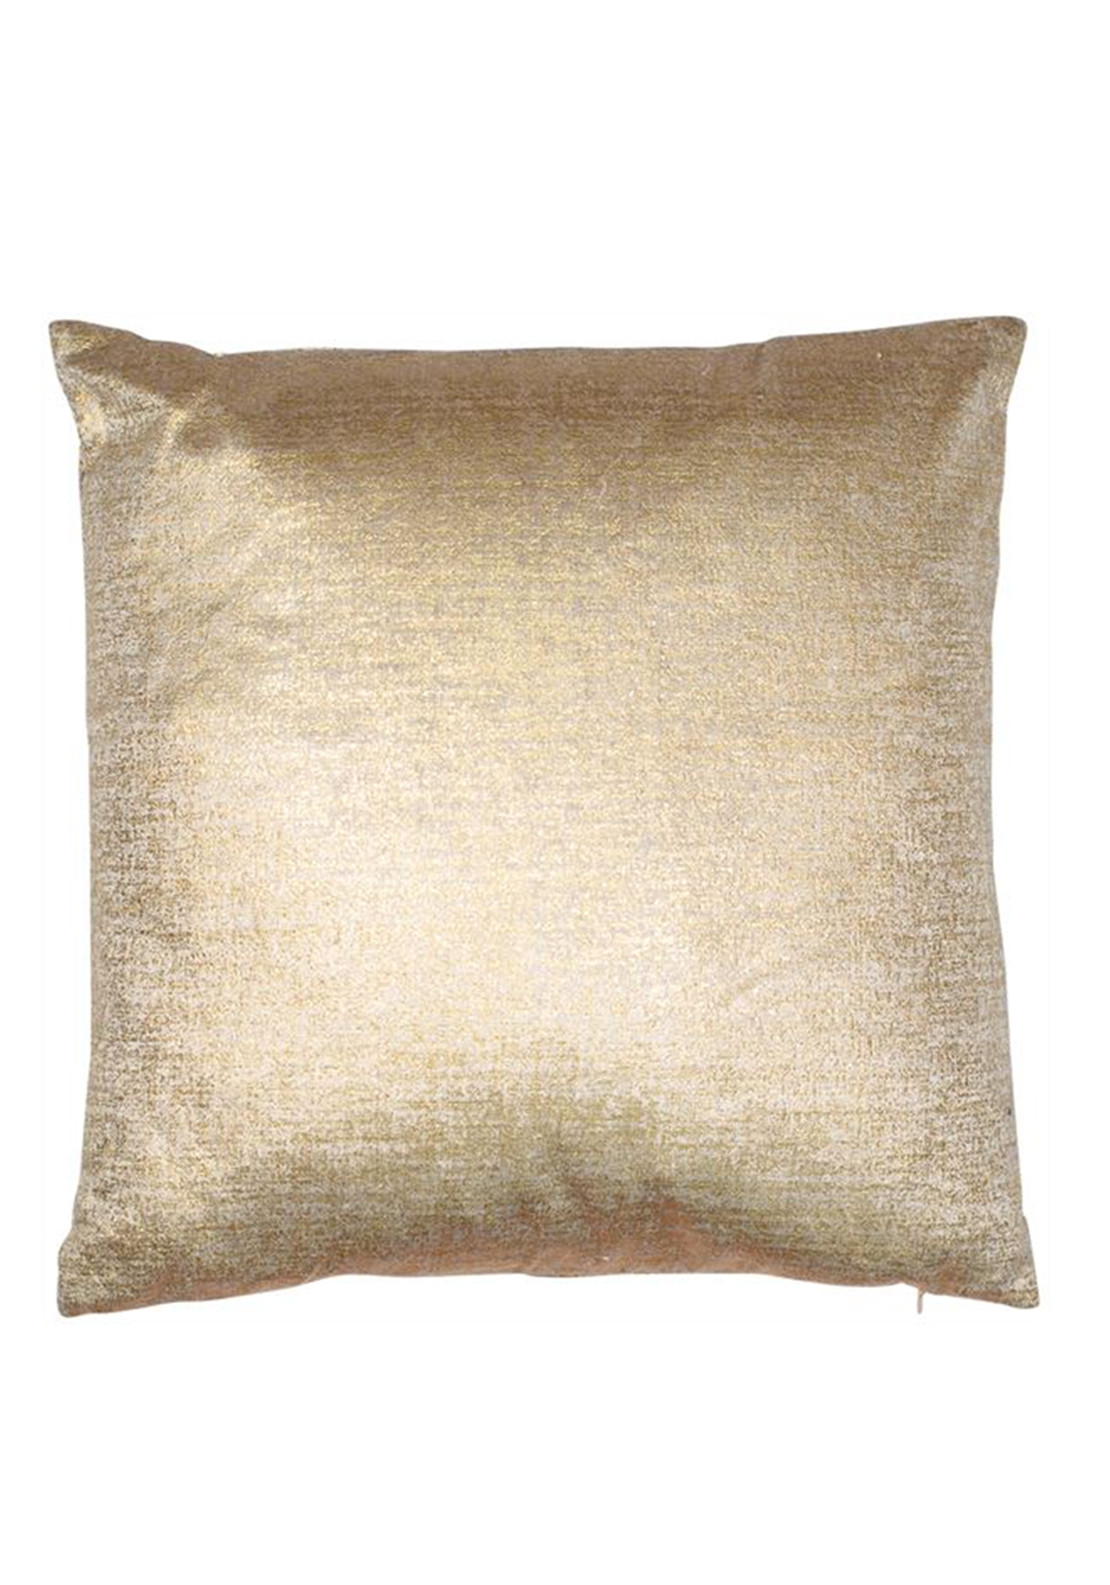 Malini Velvet Cushion, Matt Gold